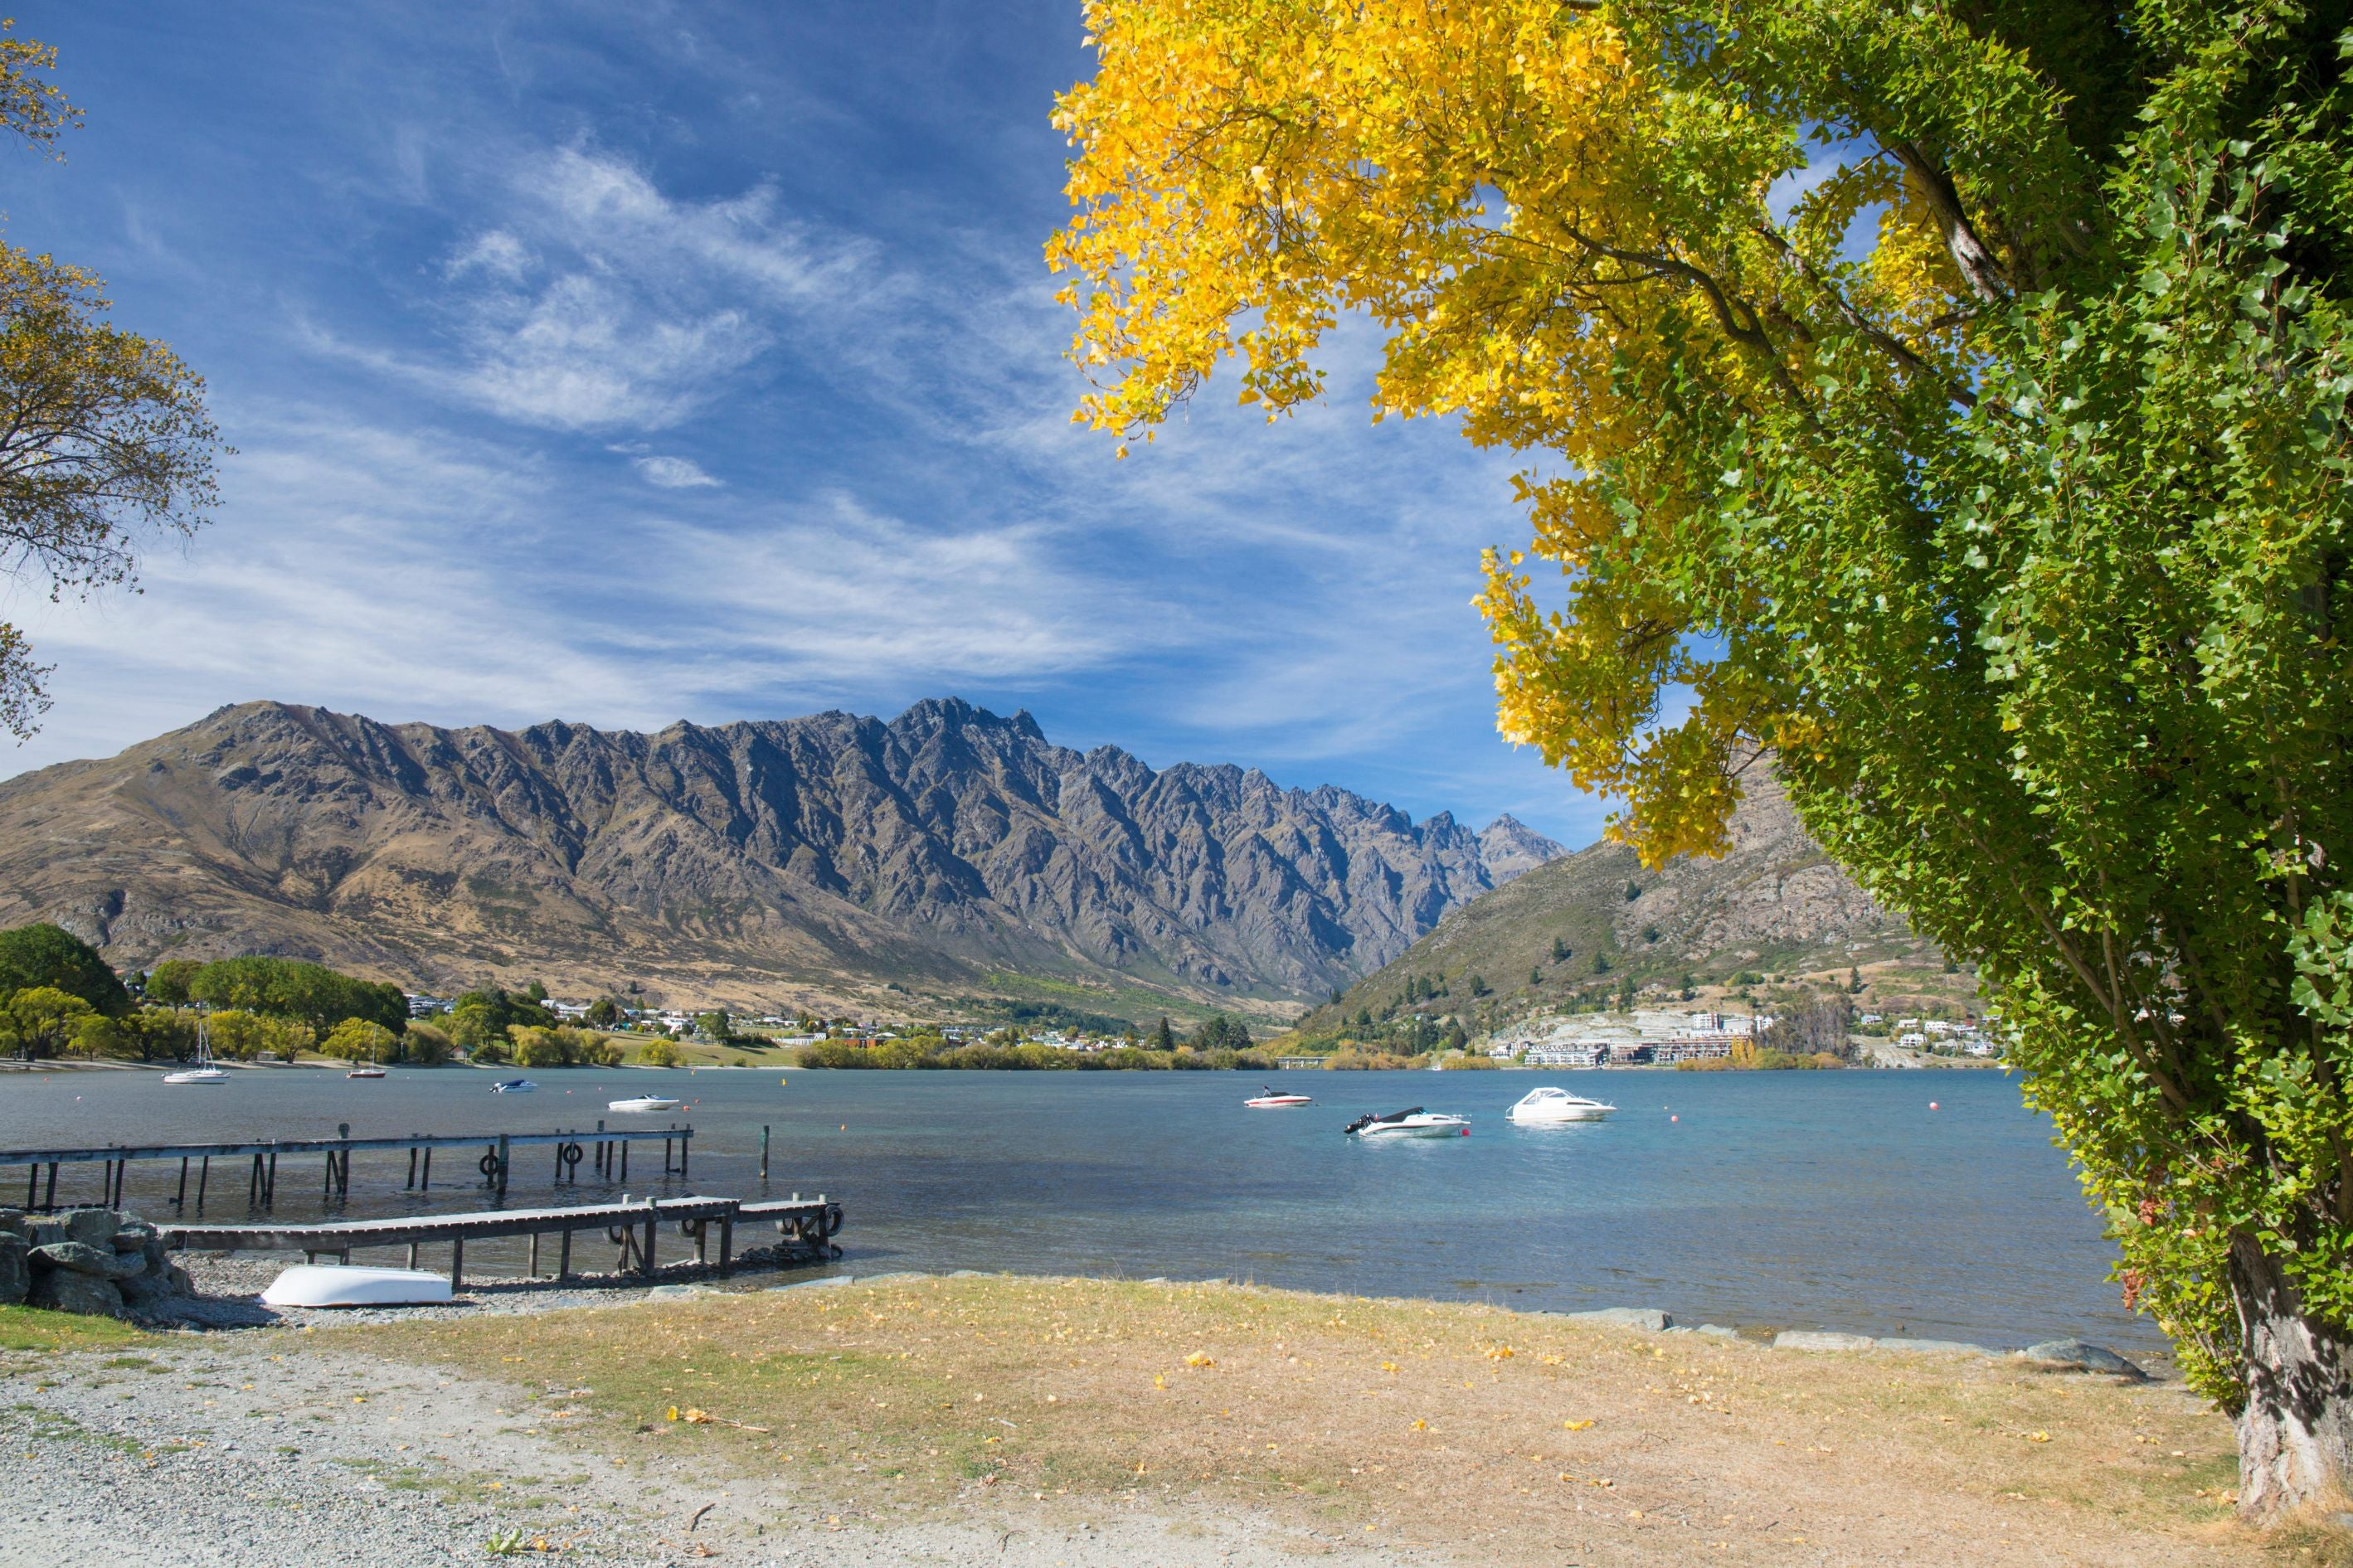 Original Image of queenstown new zealand for inspiration and reference